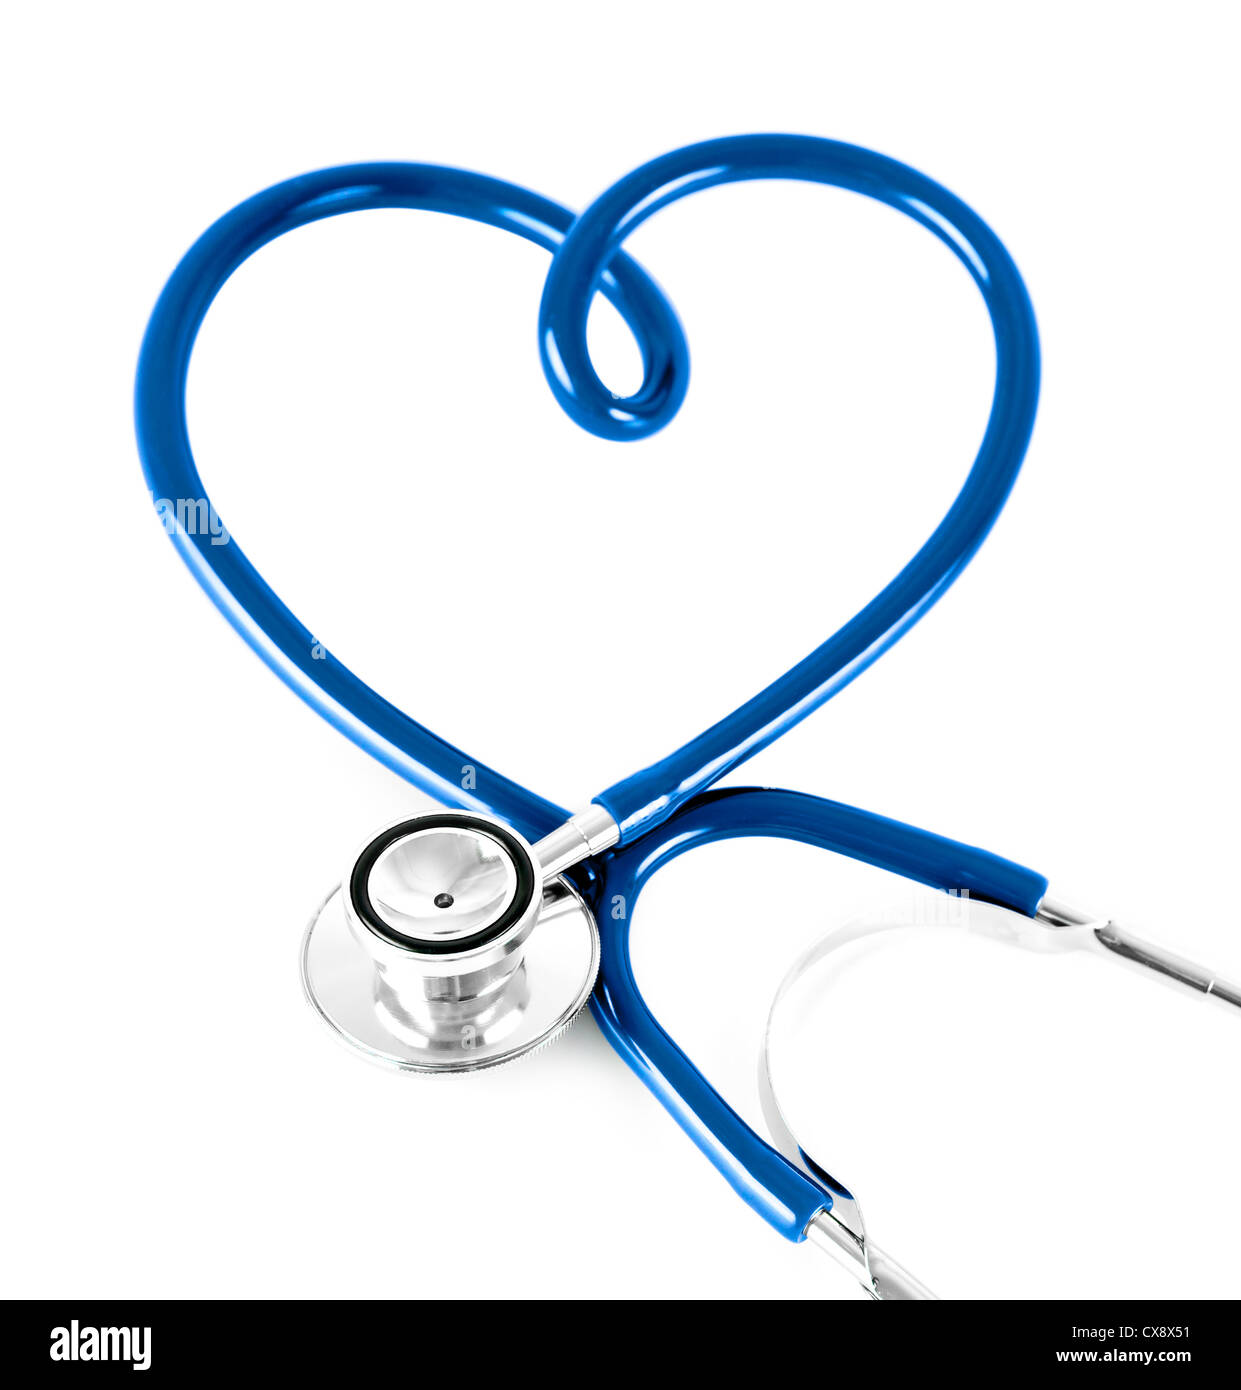 stethoscope in shape of heart concept. blue color. - Stock Image